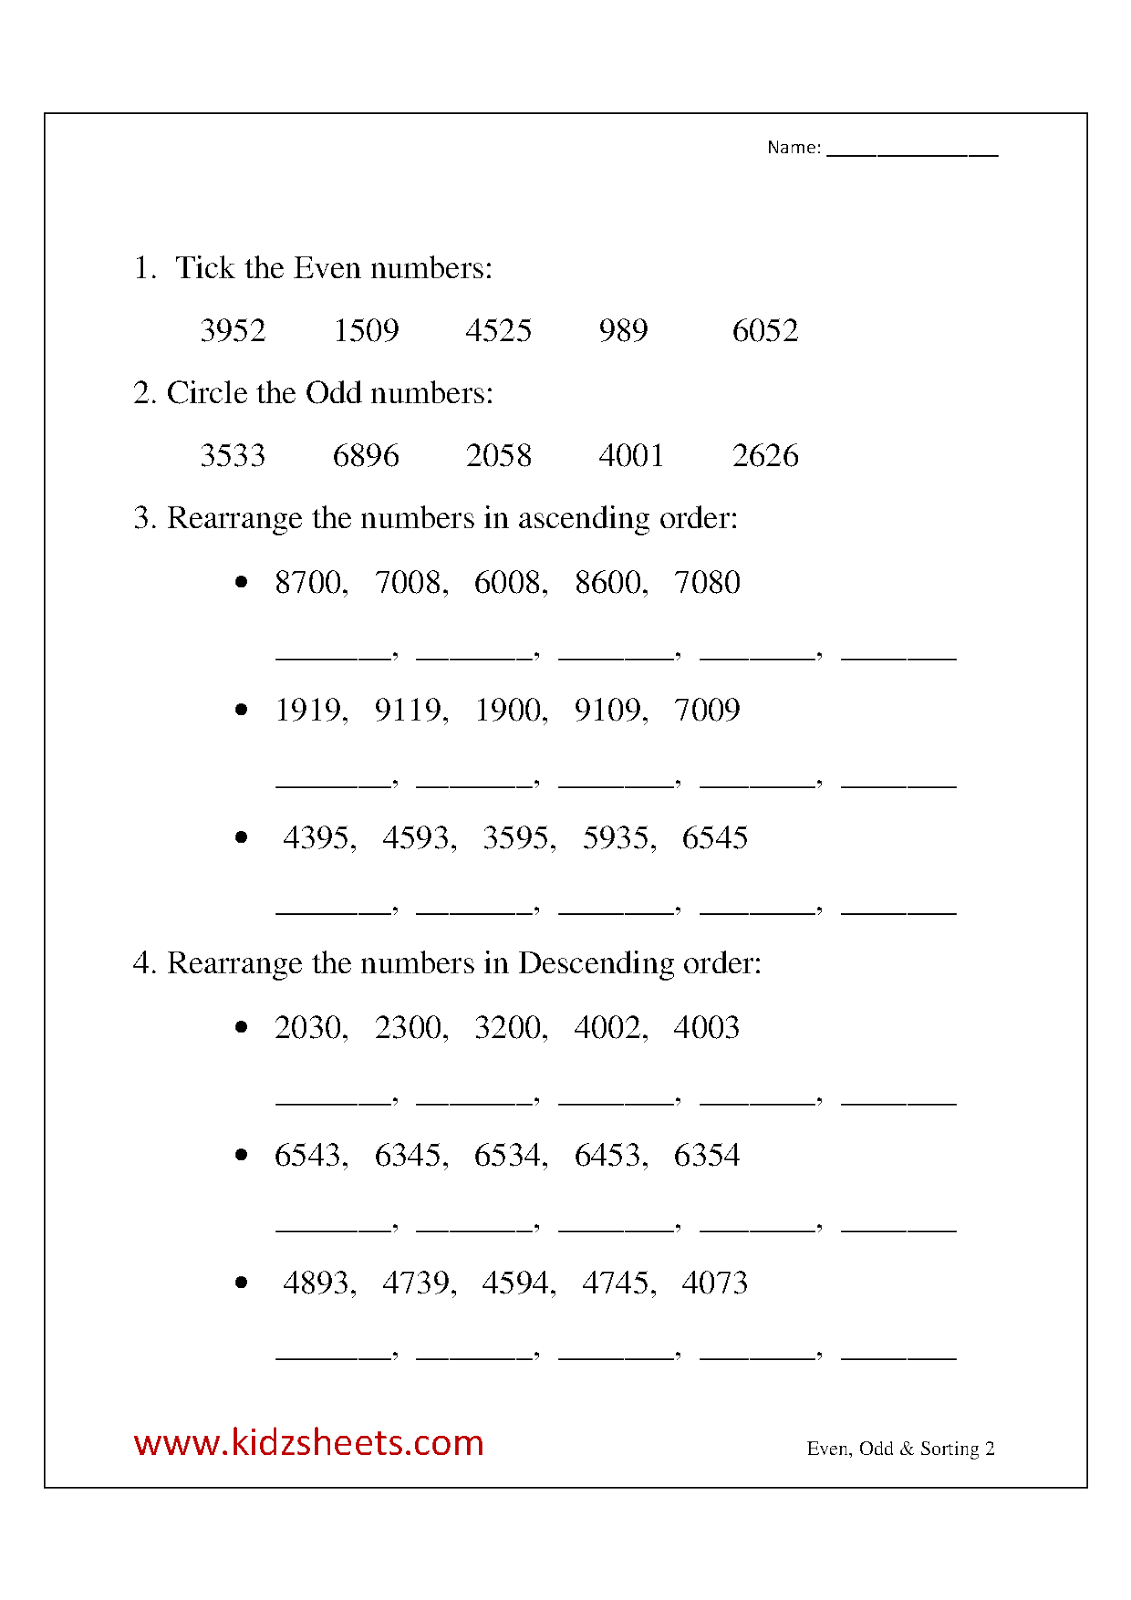 11 Best Images Of Even And Odd Numbers Worksheets